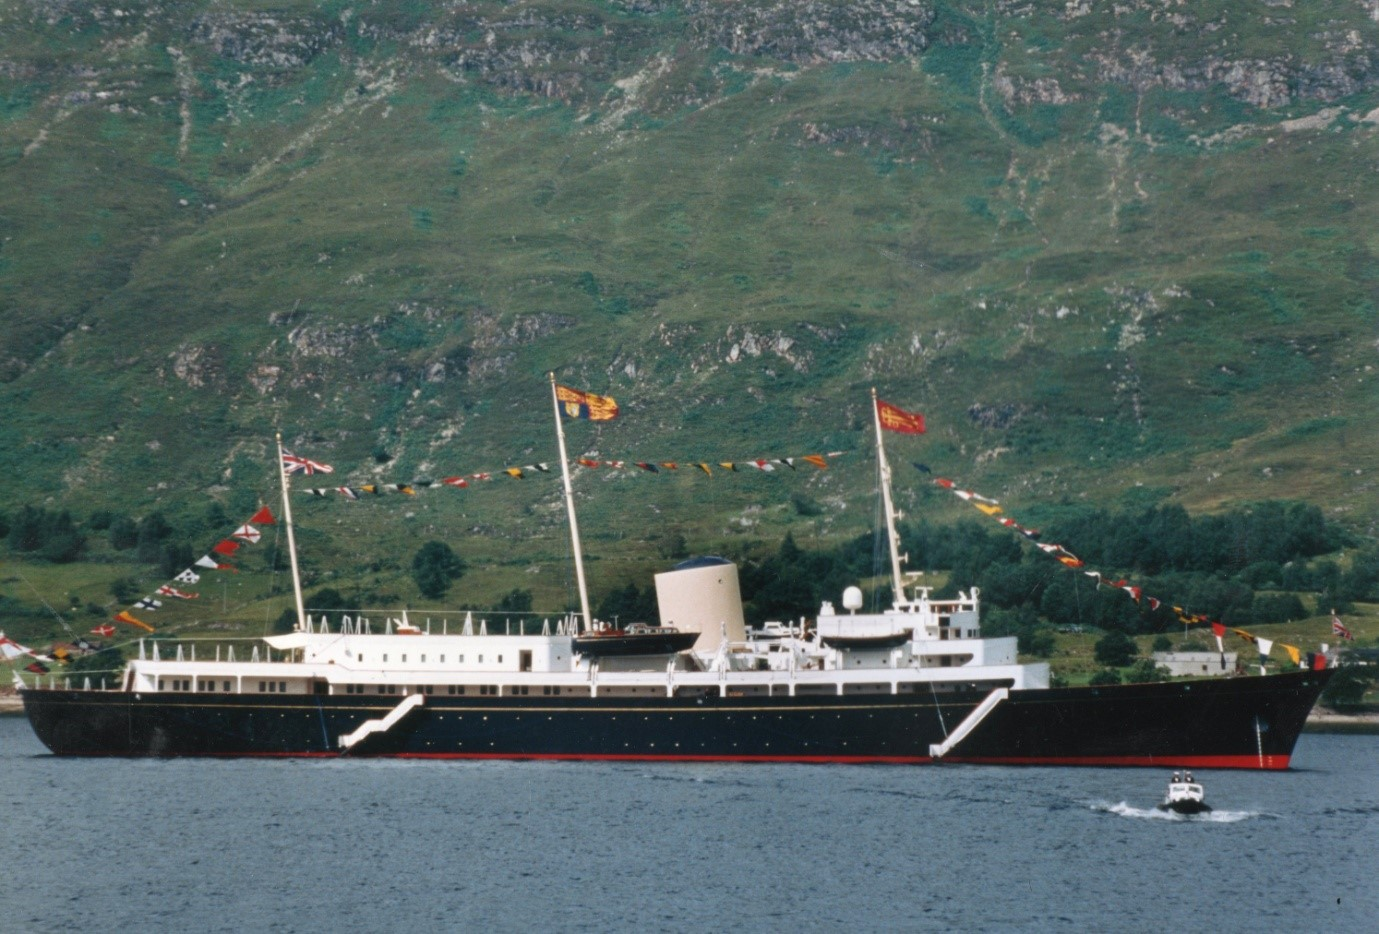 Image of Royal Yacht Brittania